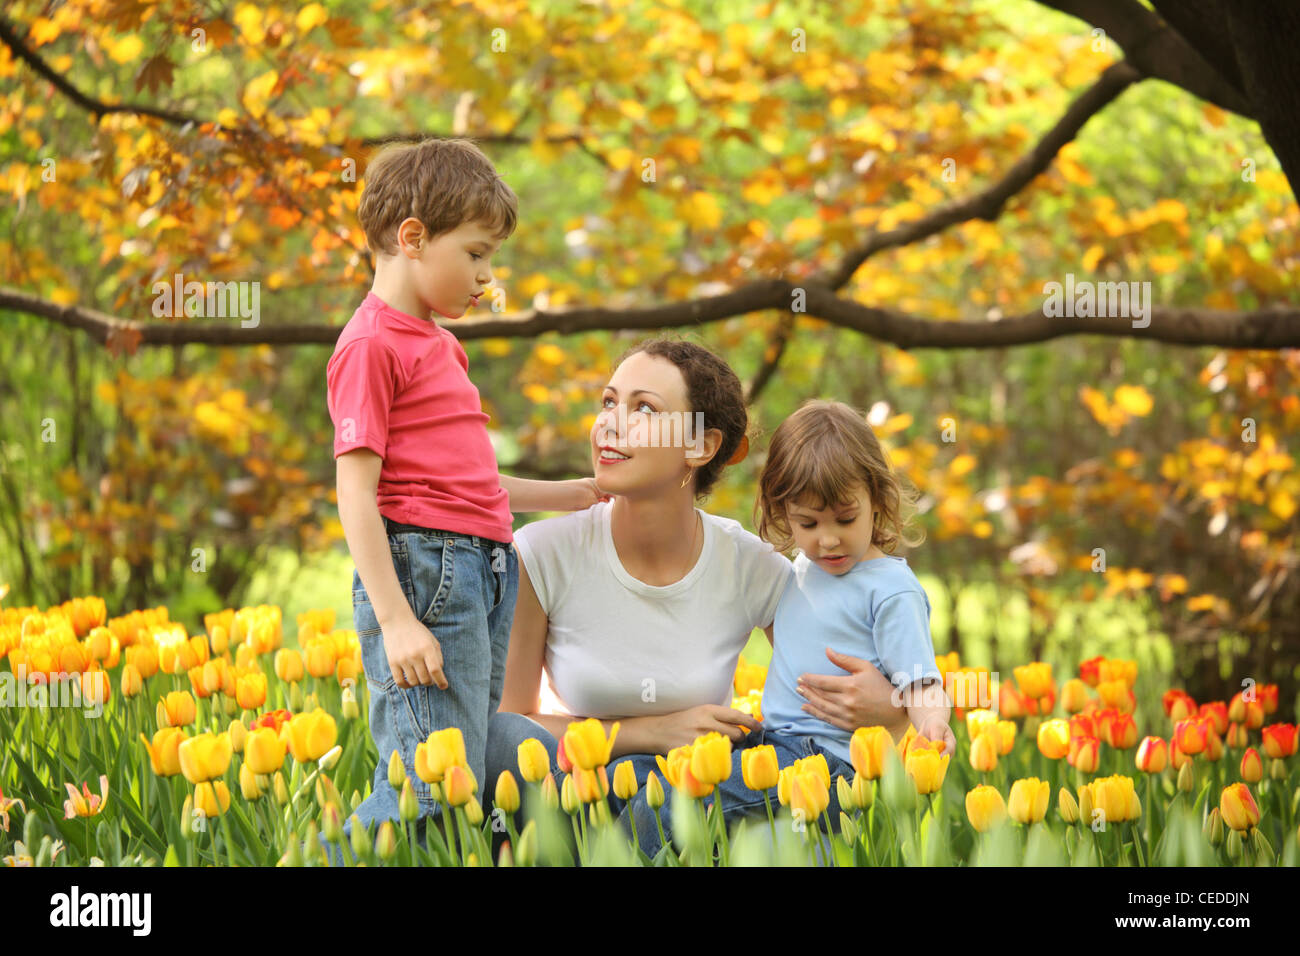 Mother with children in garden in spring among blossoming tulips - Stock Image